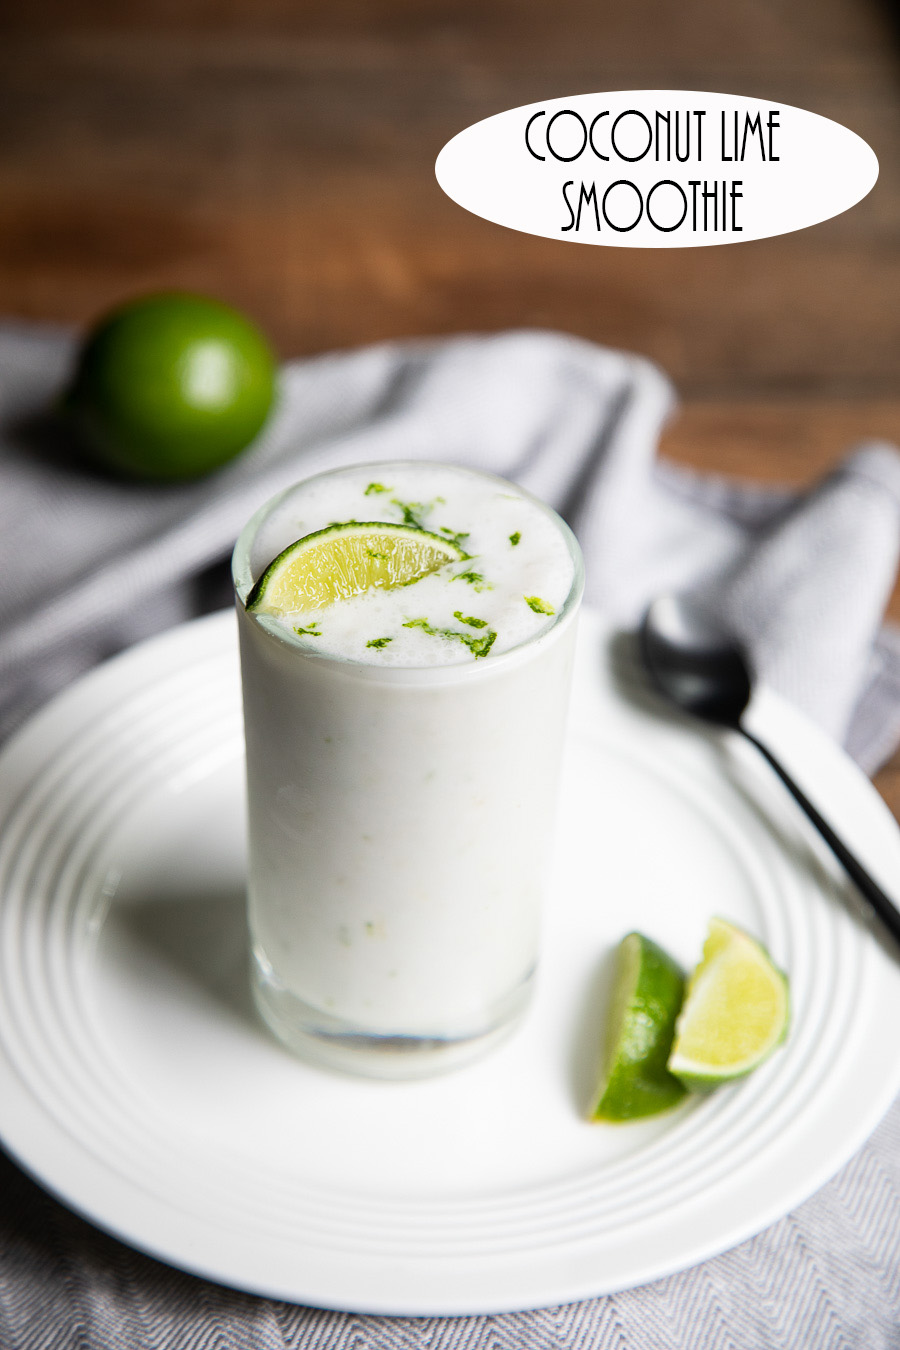 Coconut Lime Smoothie. A delicious summer drink recipe with pineapple sherbet and fresh lime juice and zest. A tasty, frozen dessert recipe. #dessert #smoothie #coconut #lime